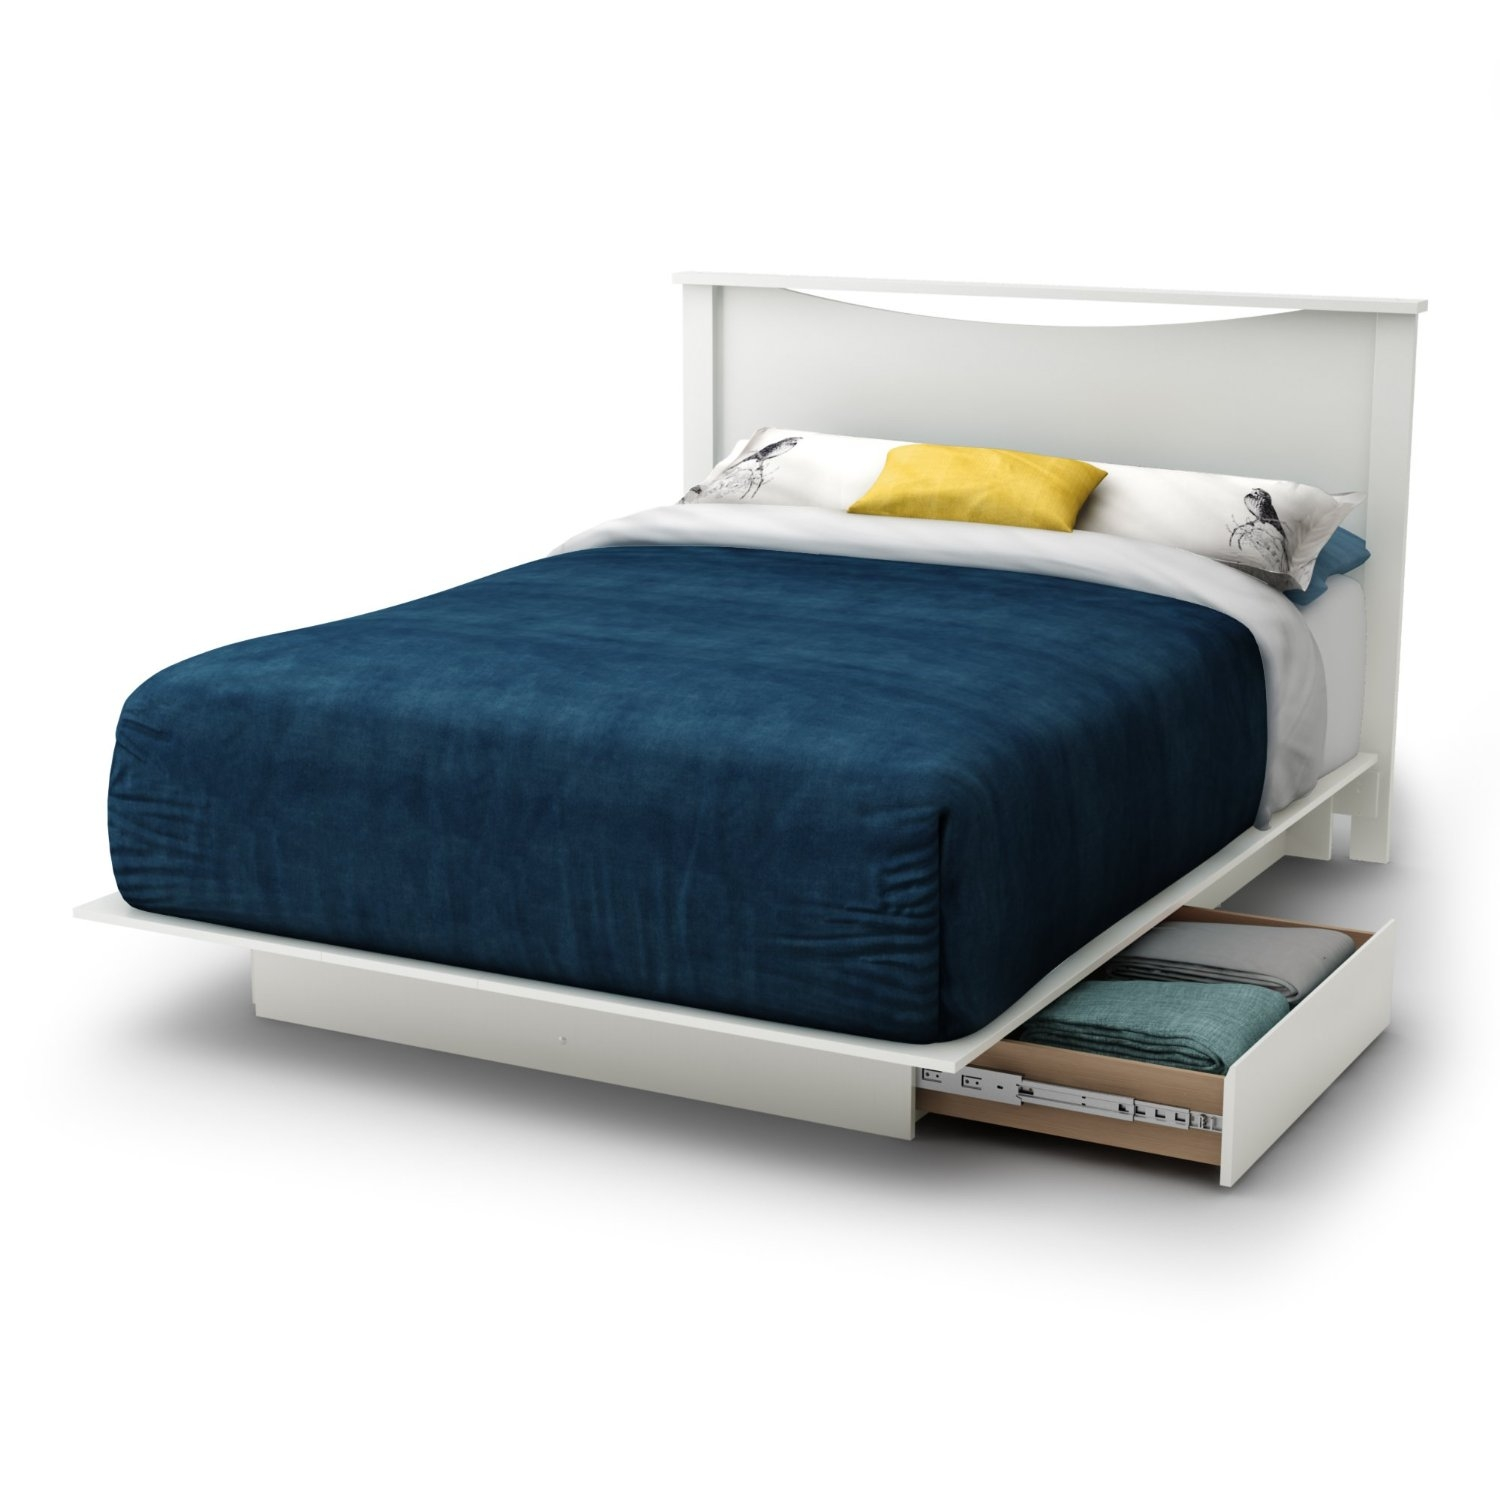 Image of: Full Size White Modern Platform Bed Frame With 2 Storage Drawers Fastfurnishings Com